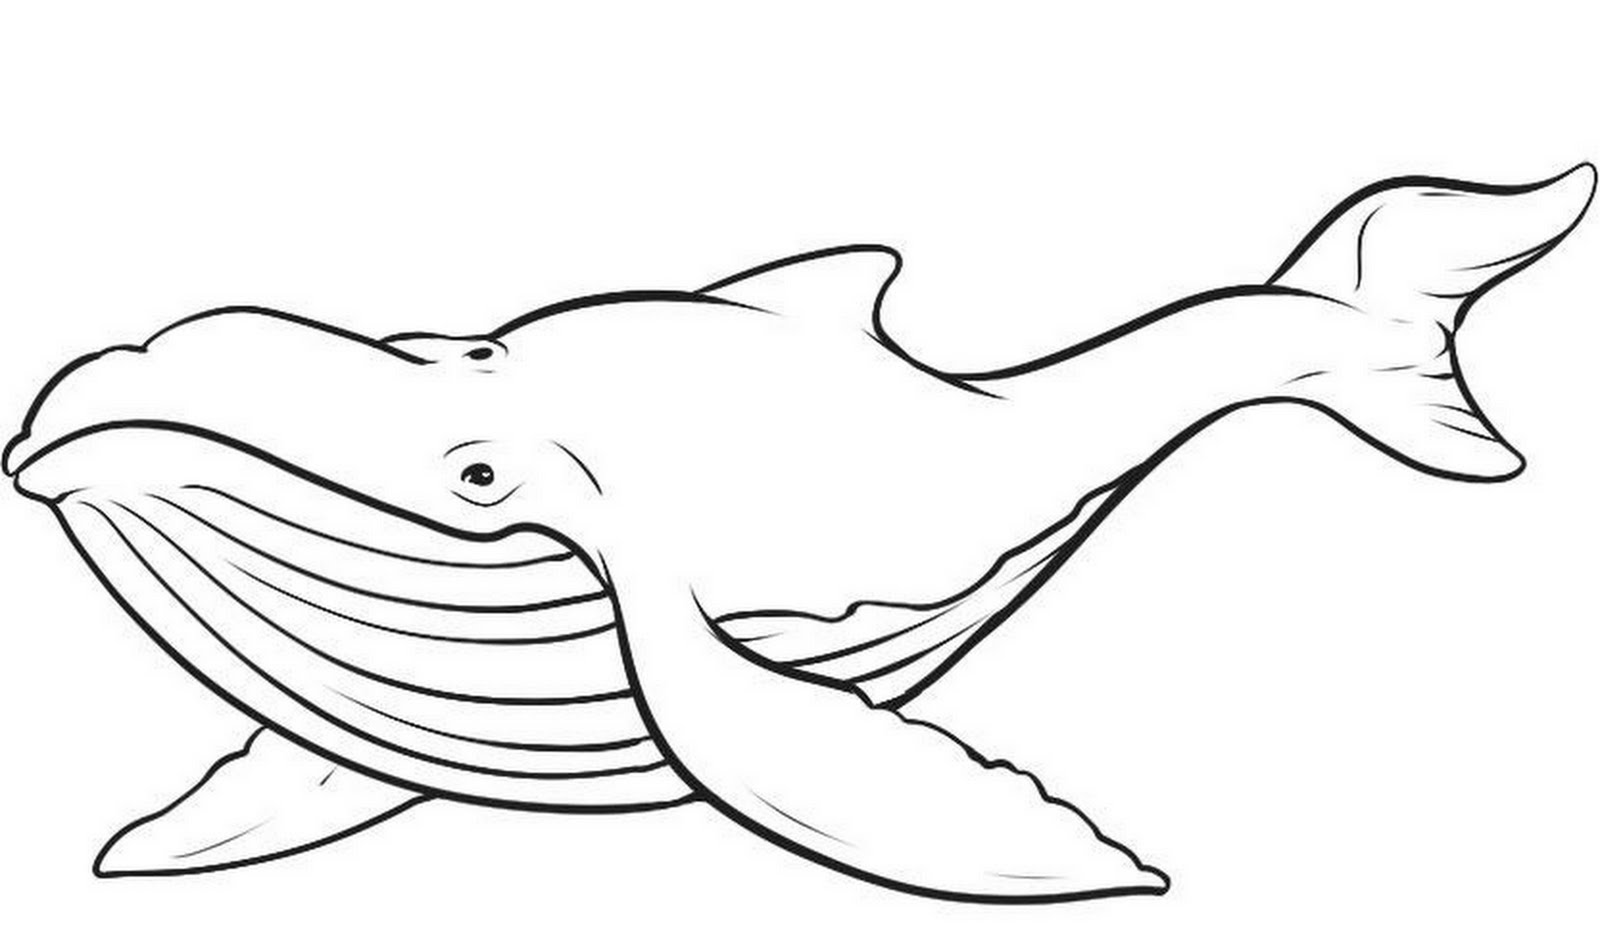 Whale Coloring Pages   coloringkids.org